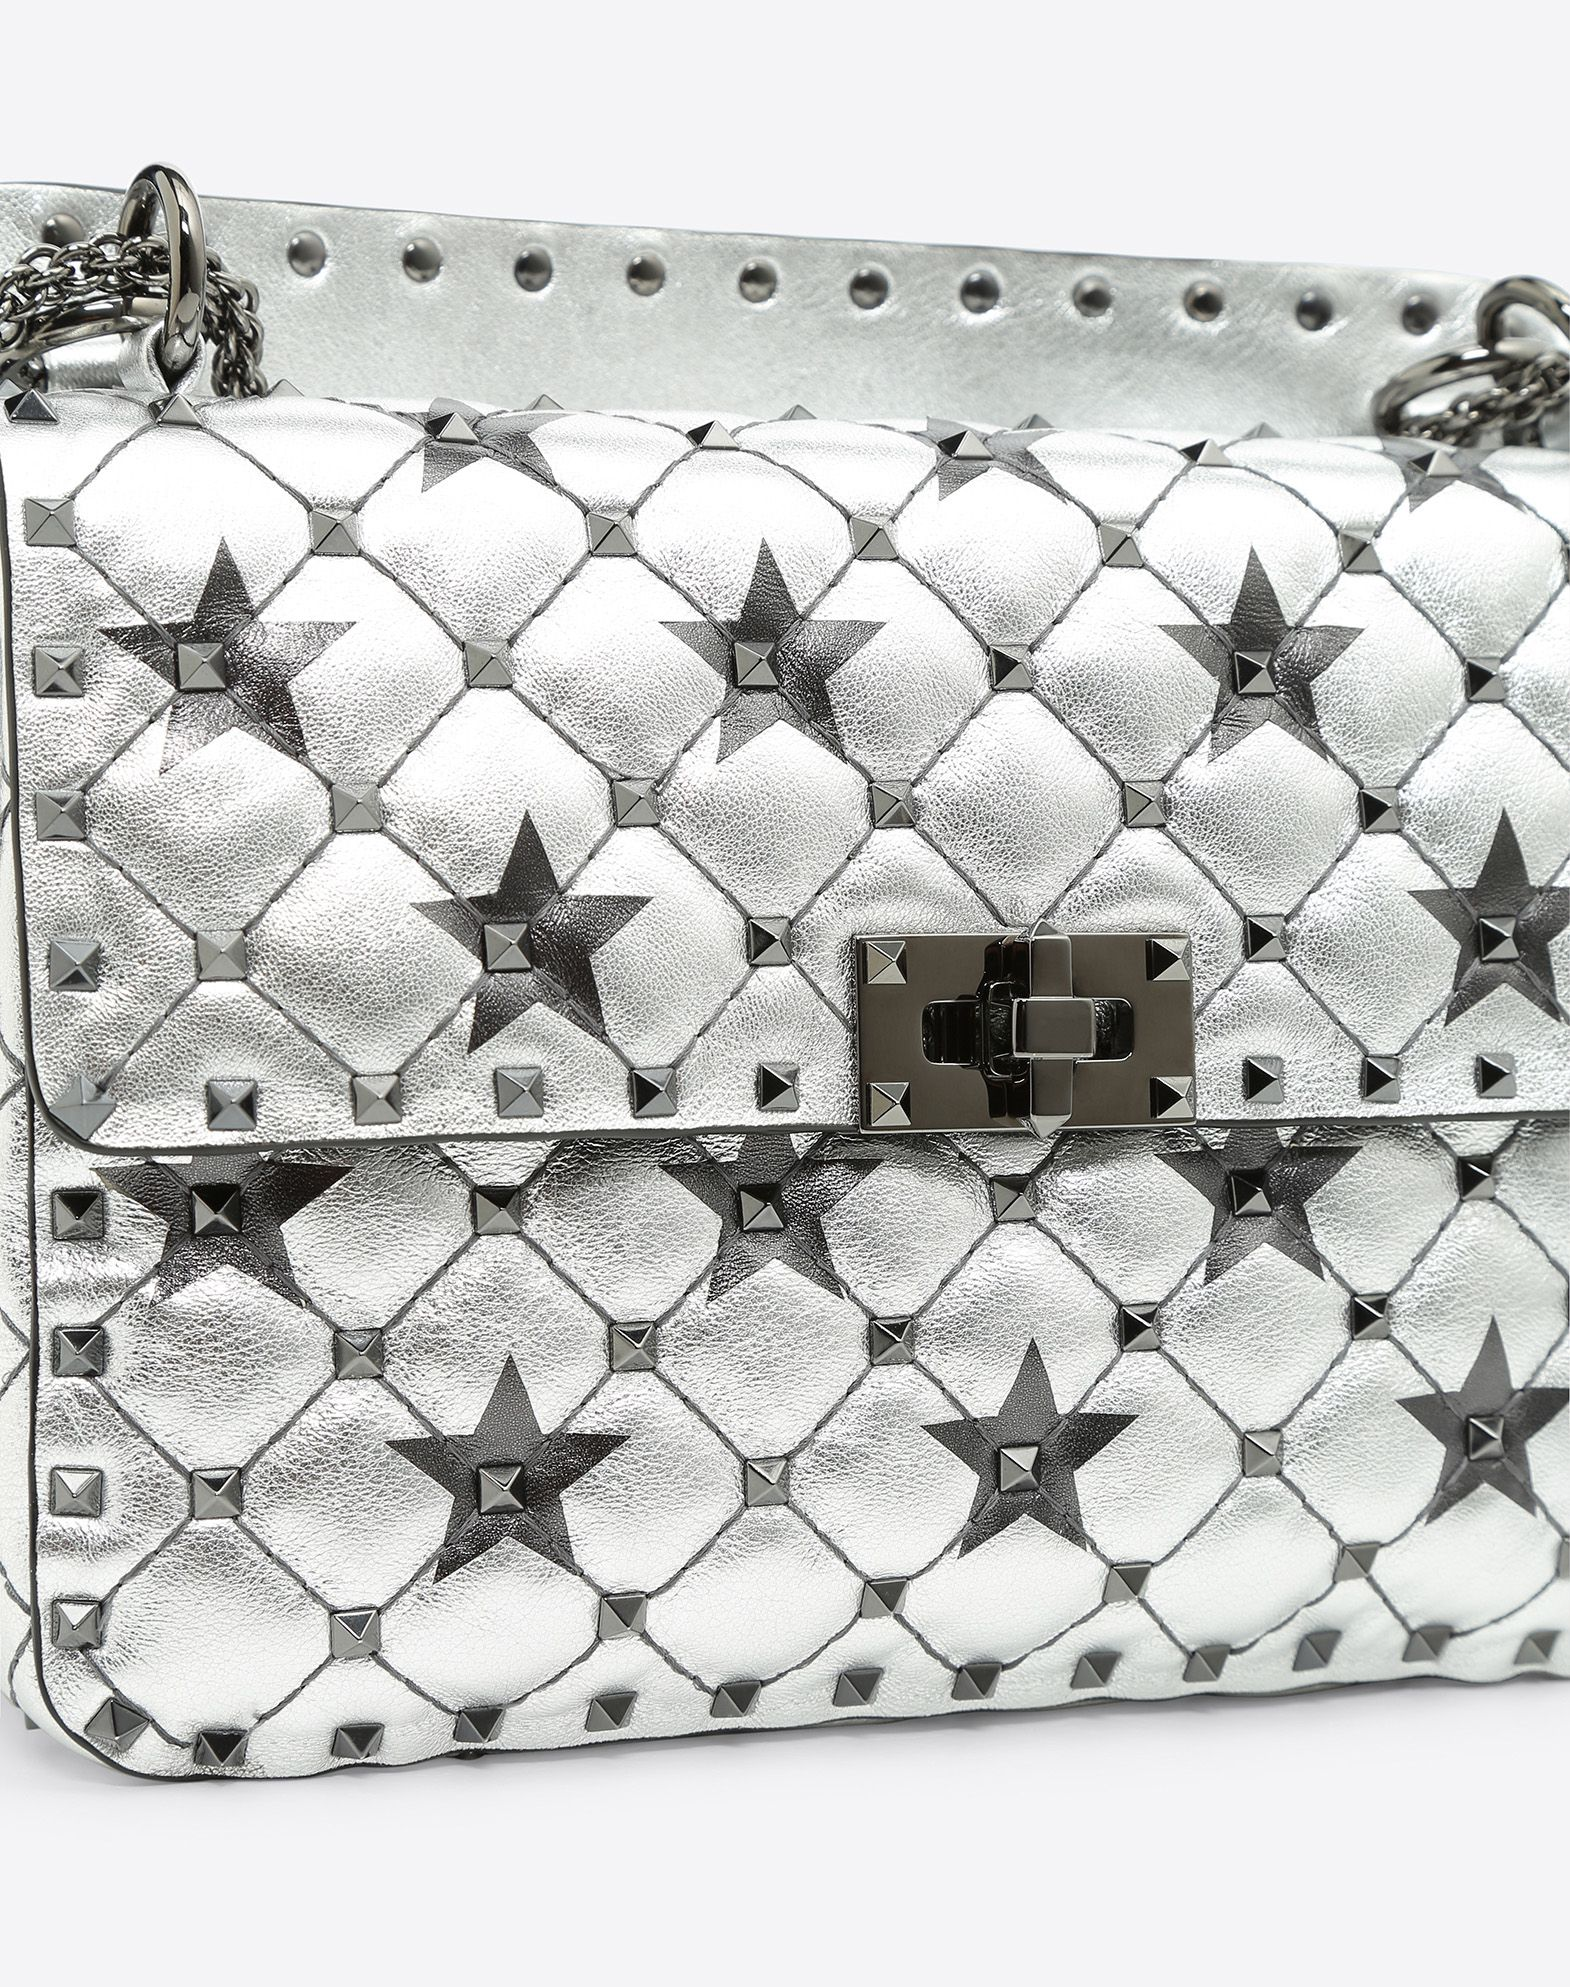 Valentino Garavani The Rockstud Spike Quilted Metallic Patent-leather Wallet - Silver Valentino 7rKkPKYT7